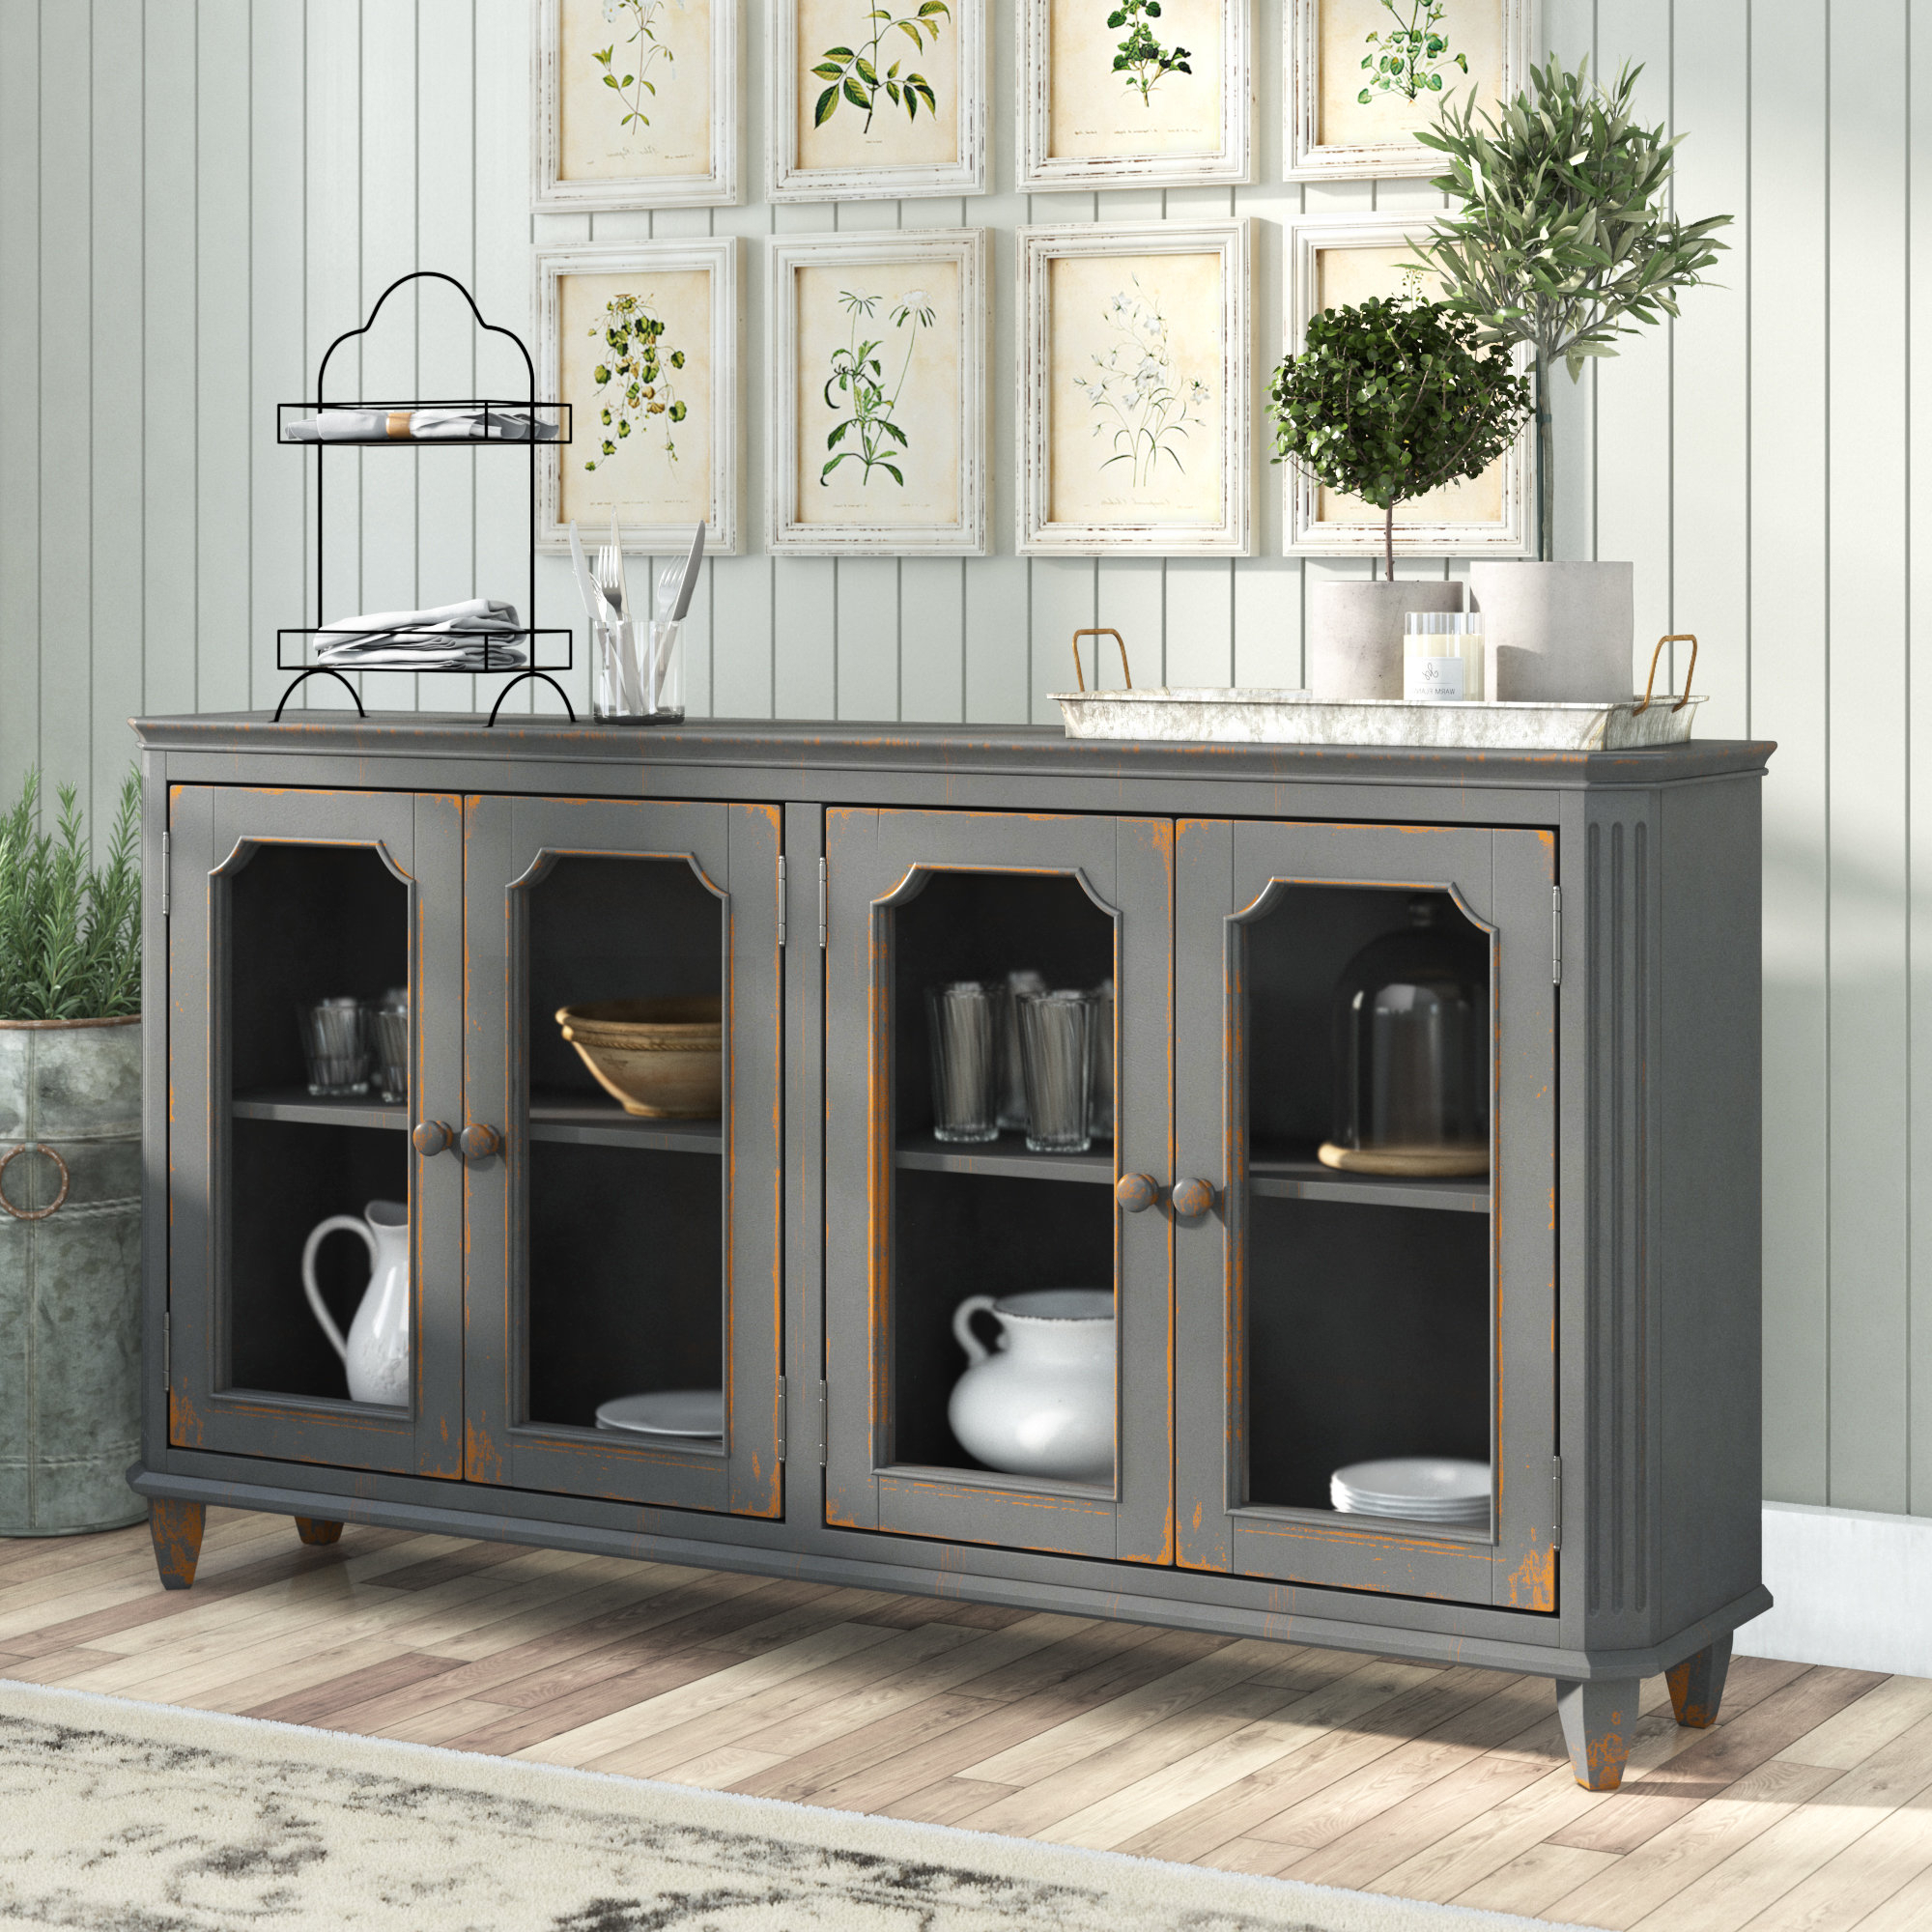 Raunds Accent Cabinet Within Most Recently Released Raunds Sideboards (View 14 of 20)